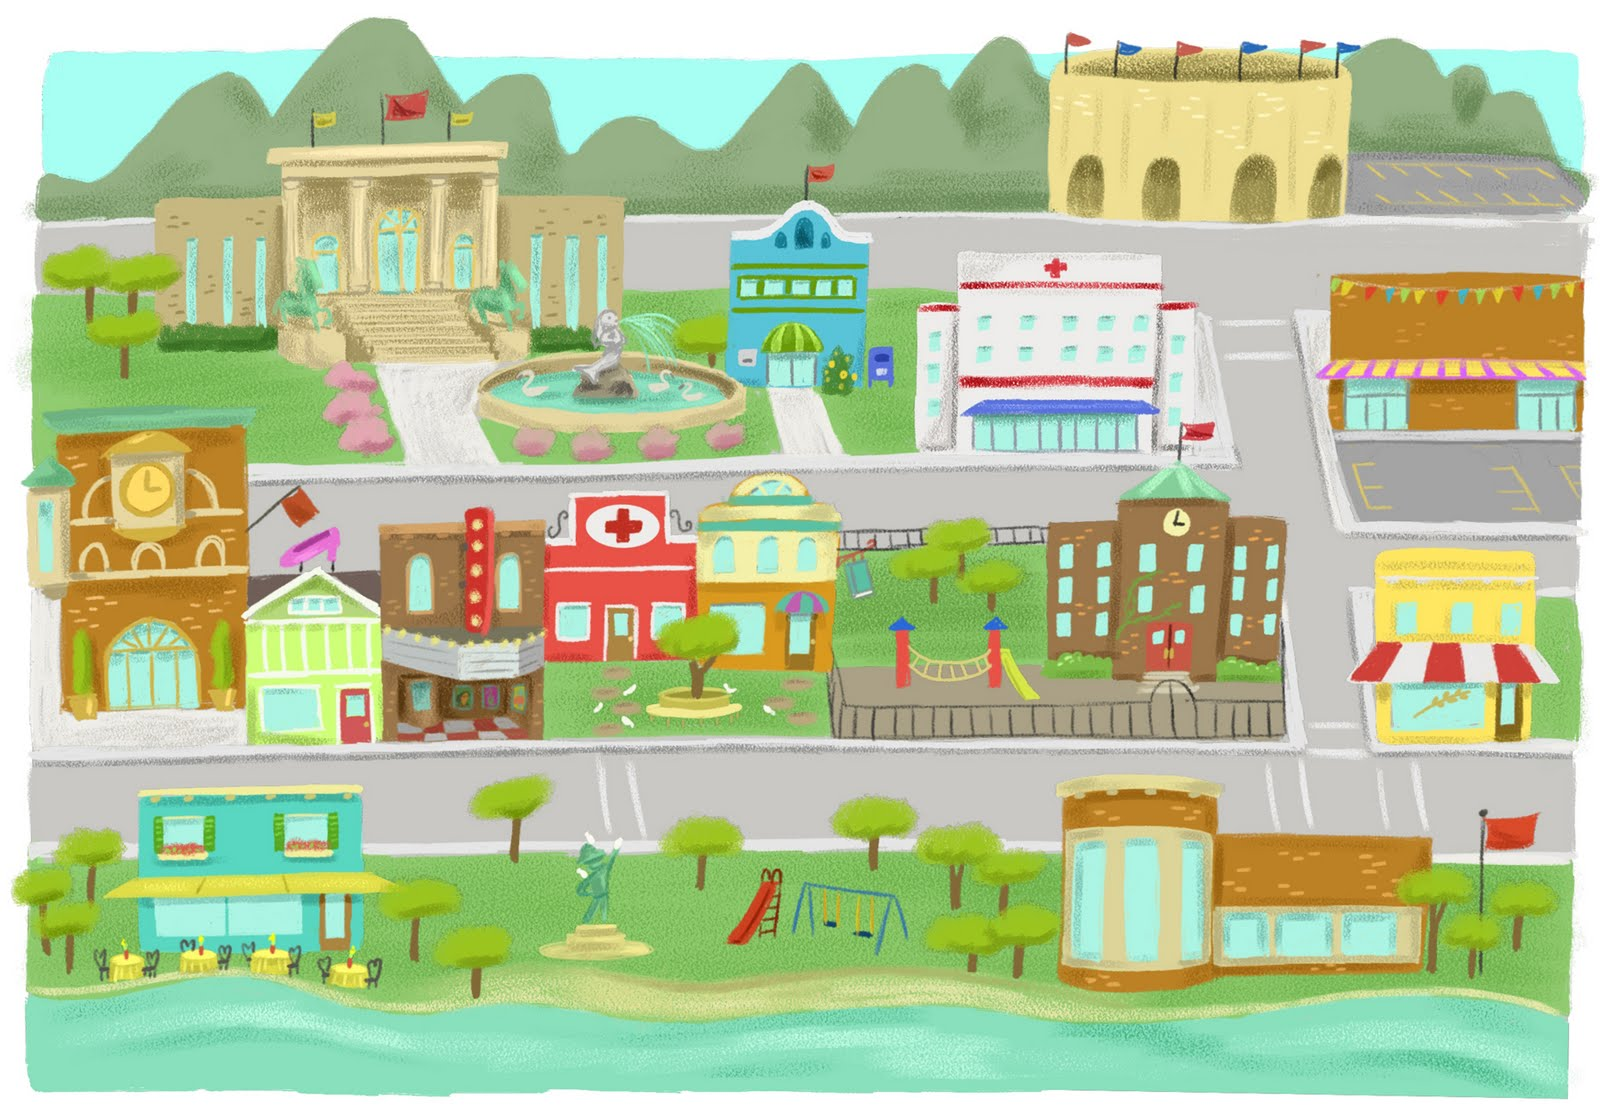 Places clipart town Free Images Clipart town%20clipart Panda